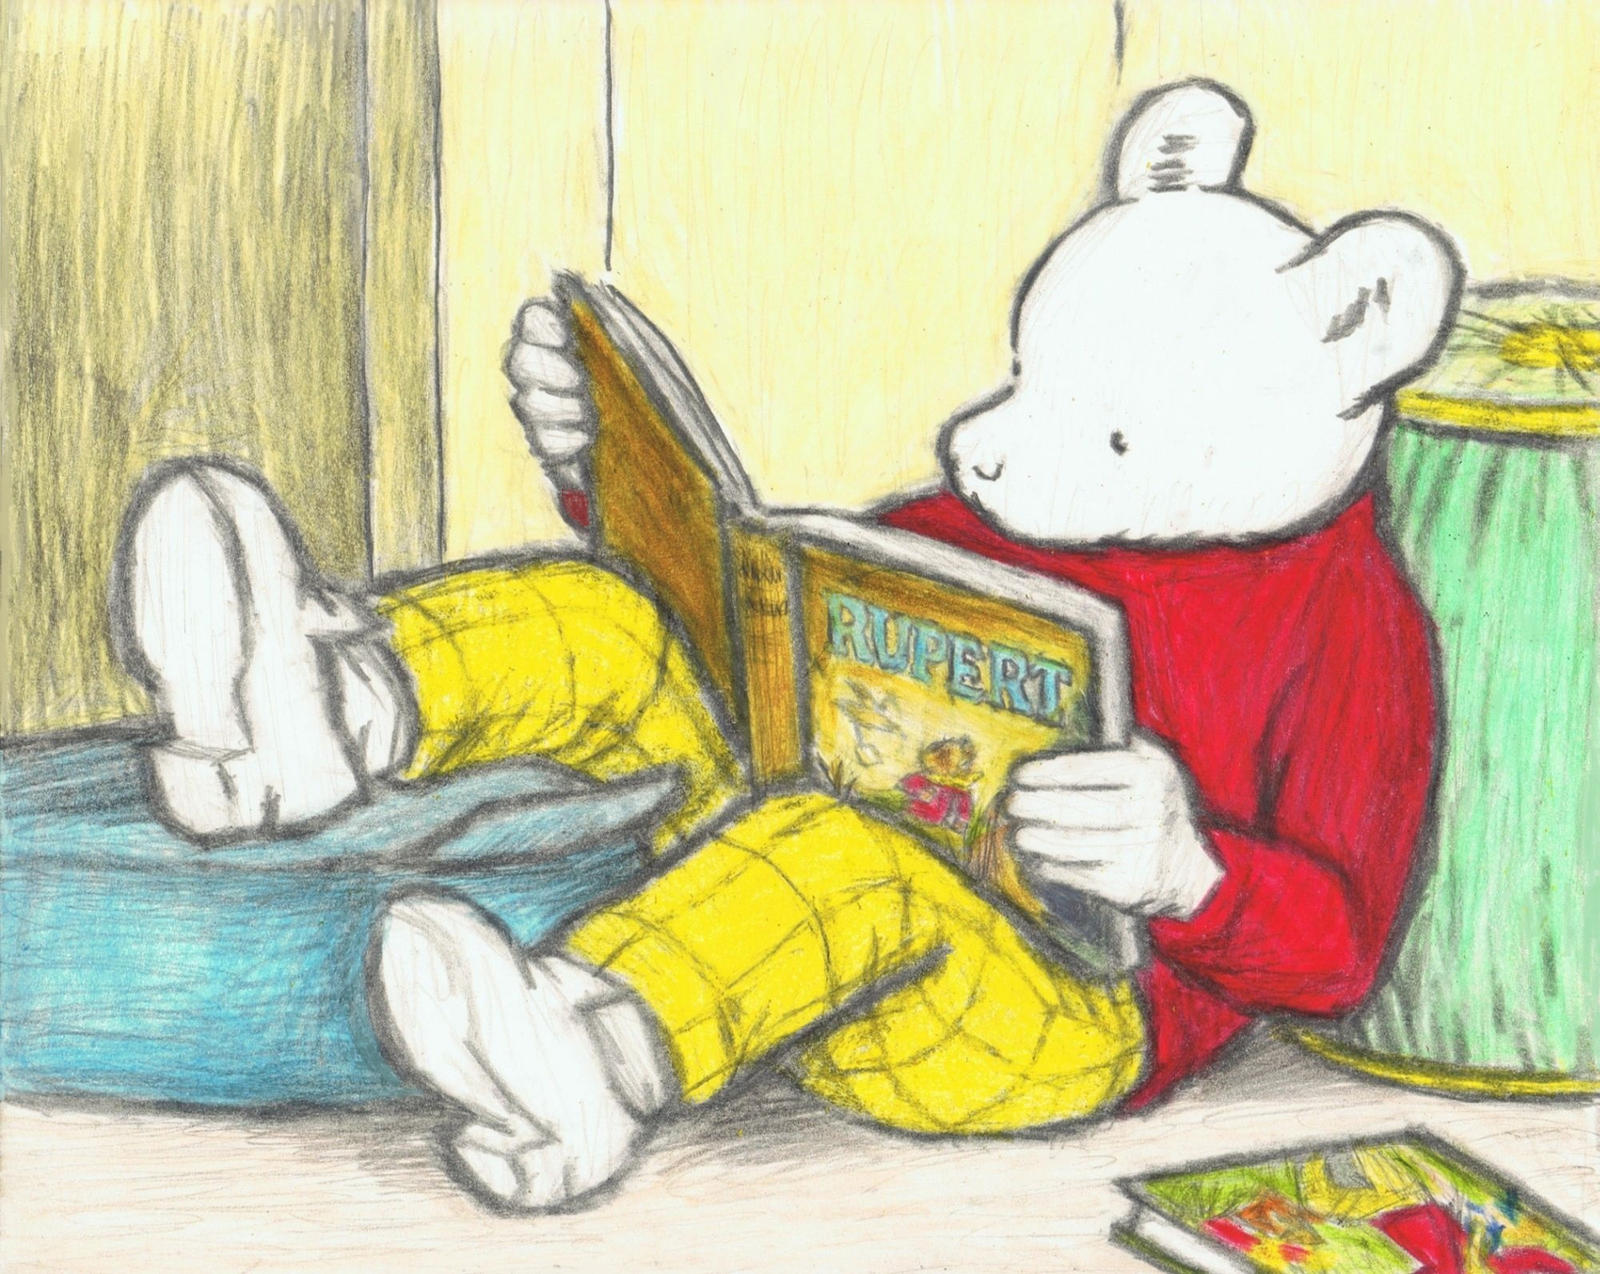 Rupert the Bear reading a Rupert Bear book by gagambo